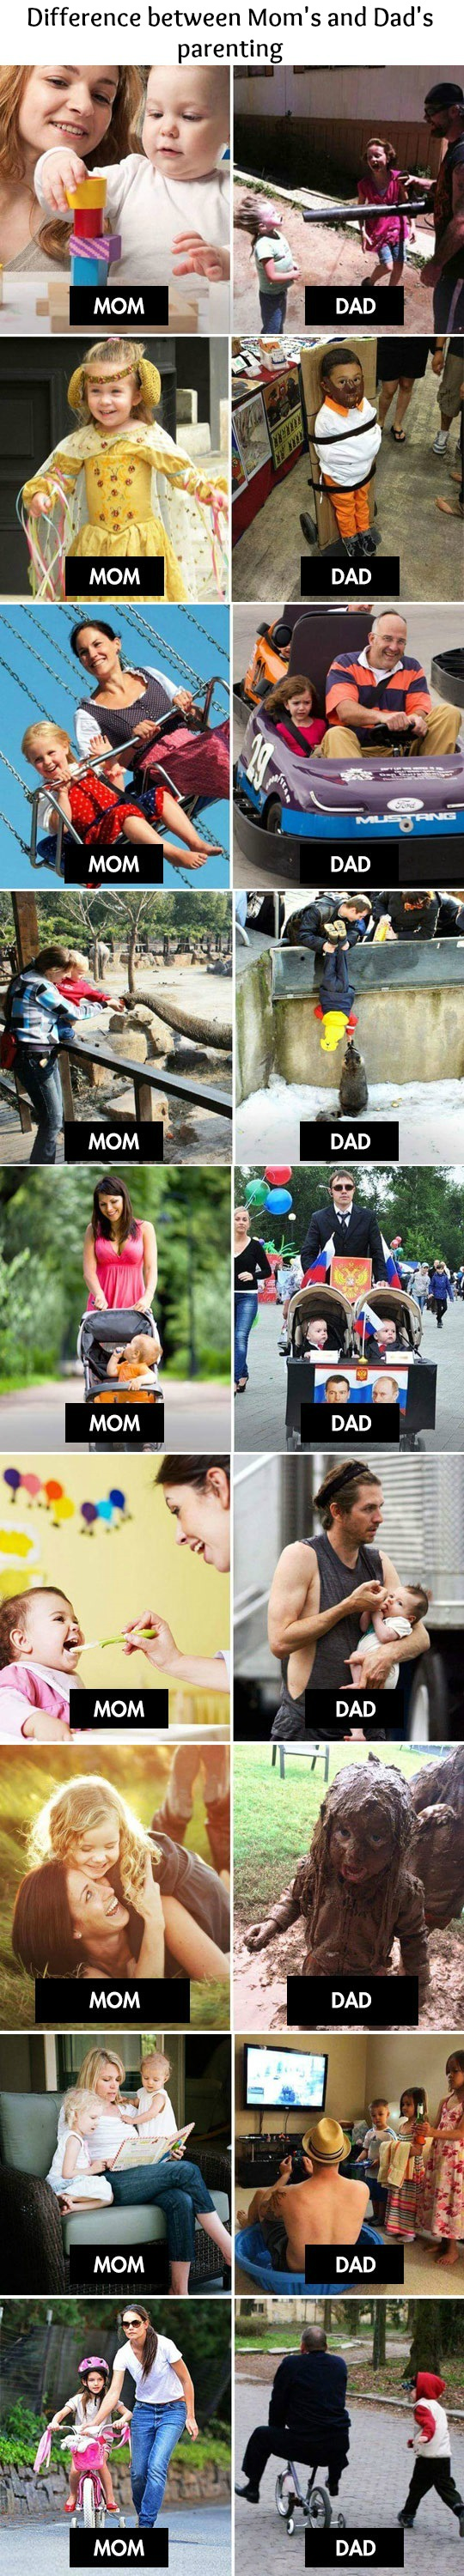 moms vs dads, funny pics, parenting humor, lol